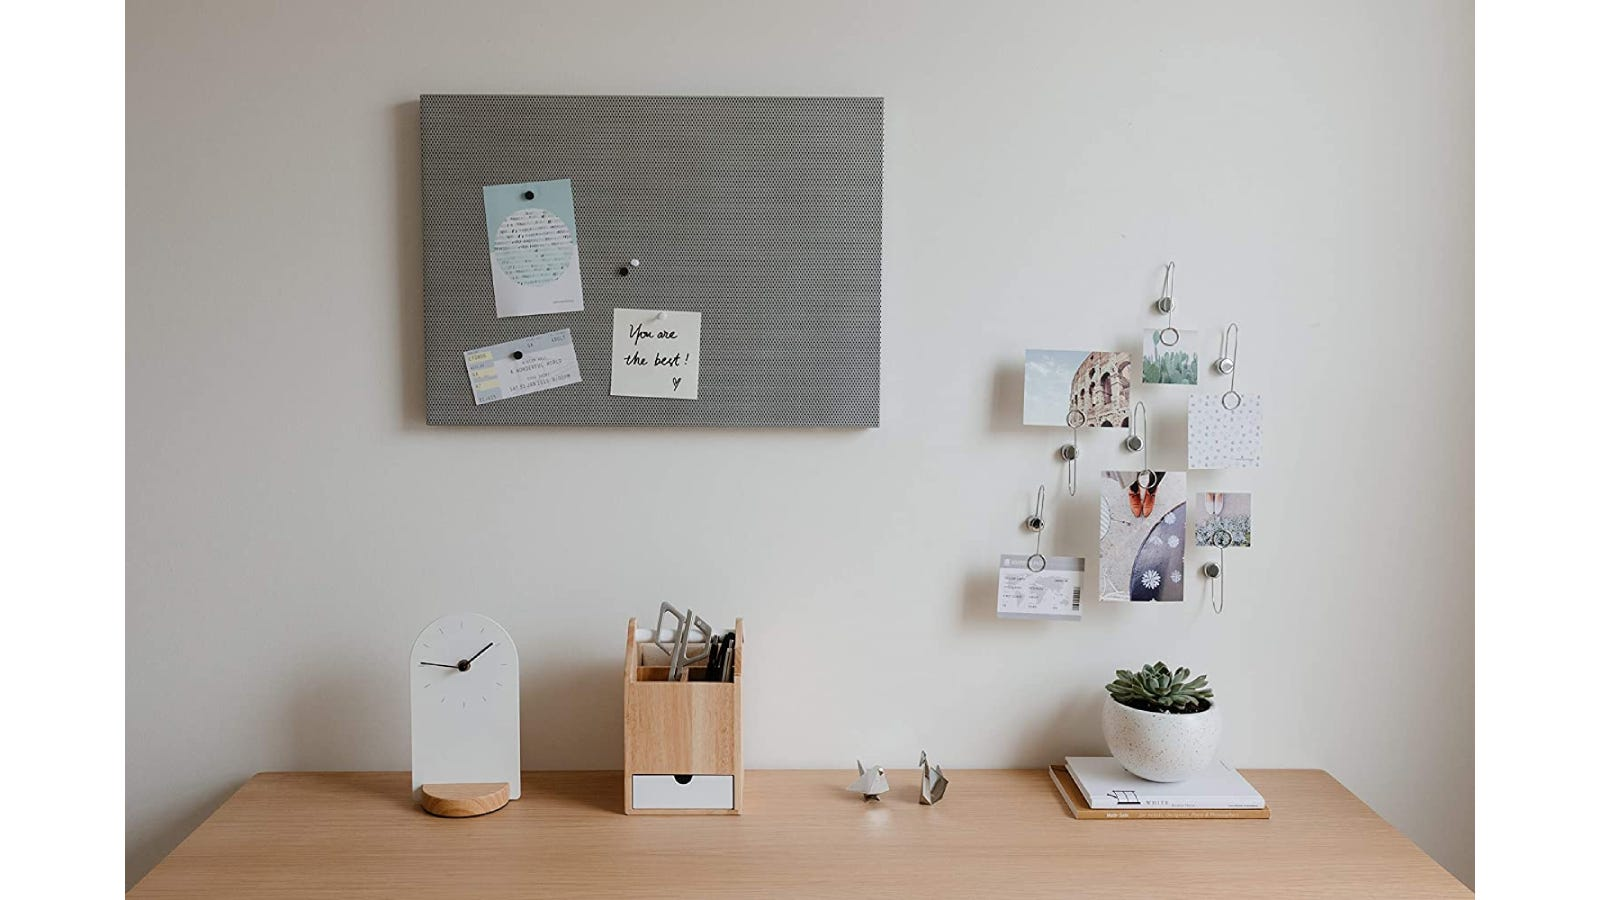 A grey bulletin board with notes pinned on it is mounted above a decorated wooden desk.